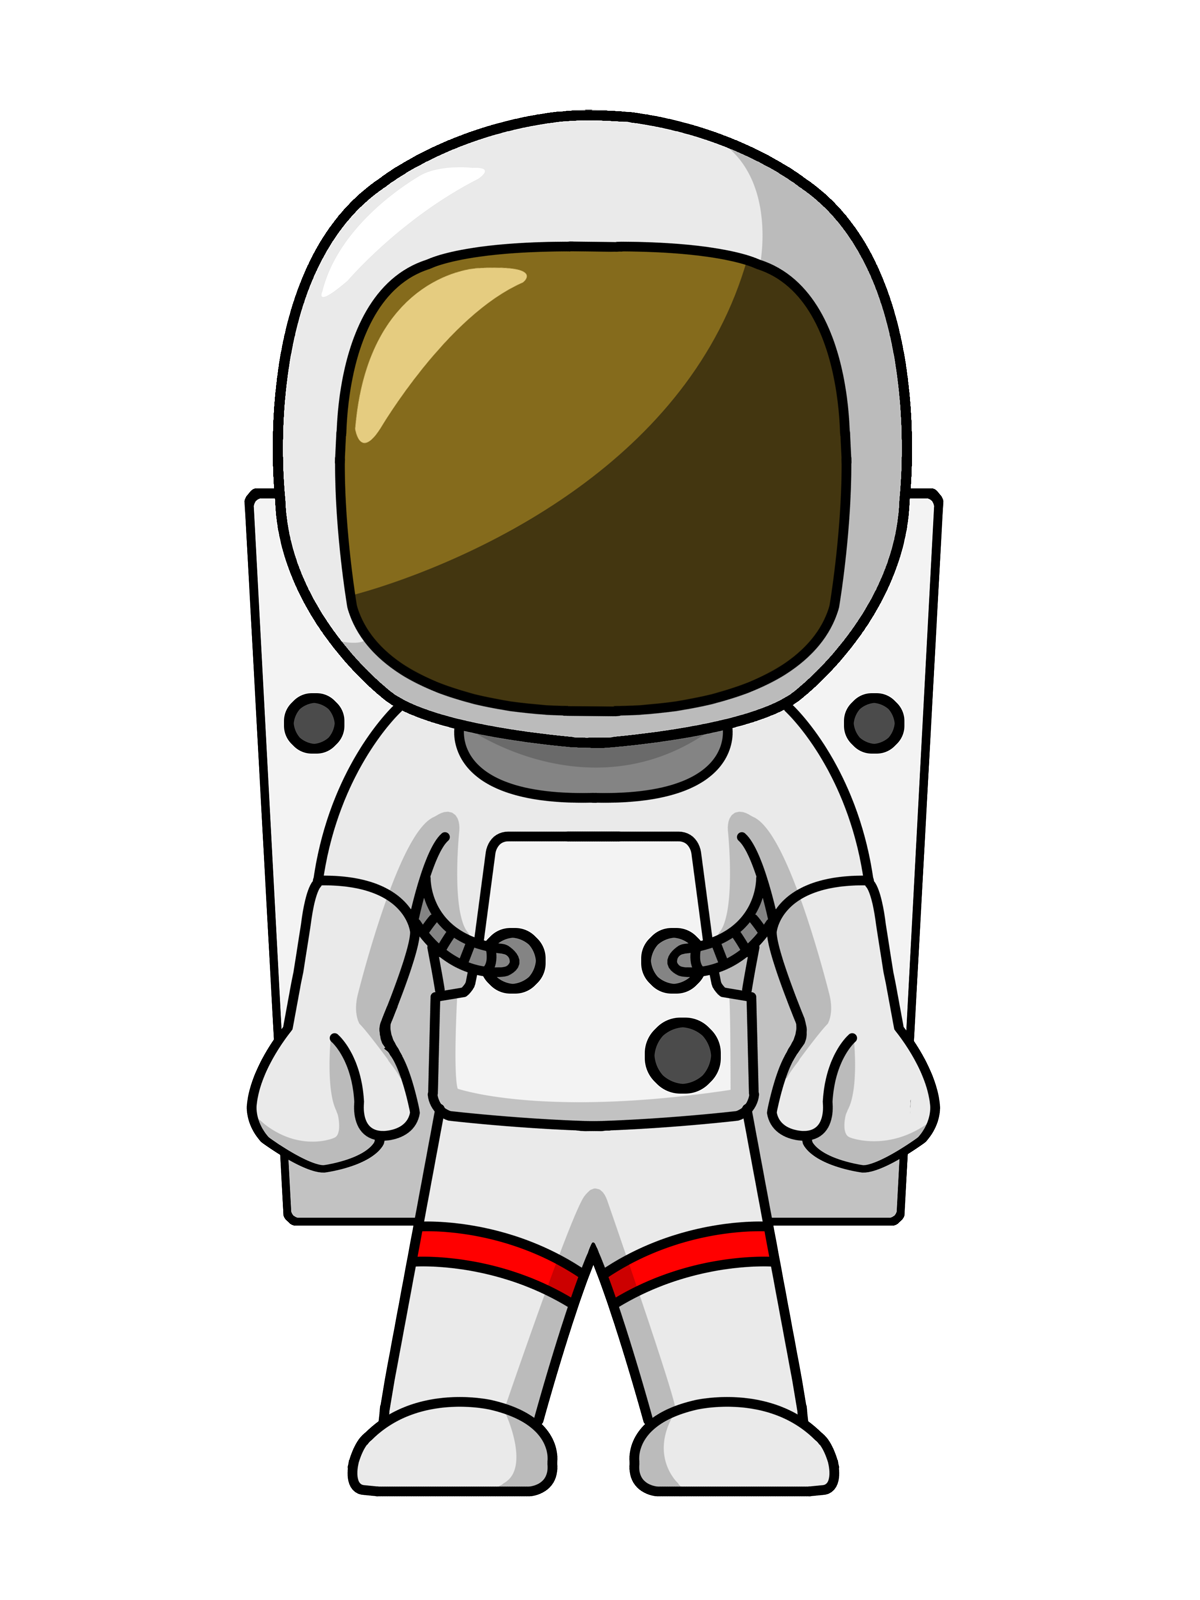 png royalty free library Astronaut Clip Art Images Free For Commercial Use